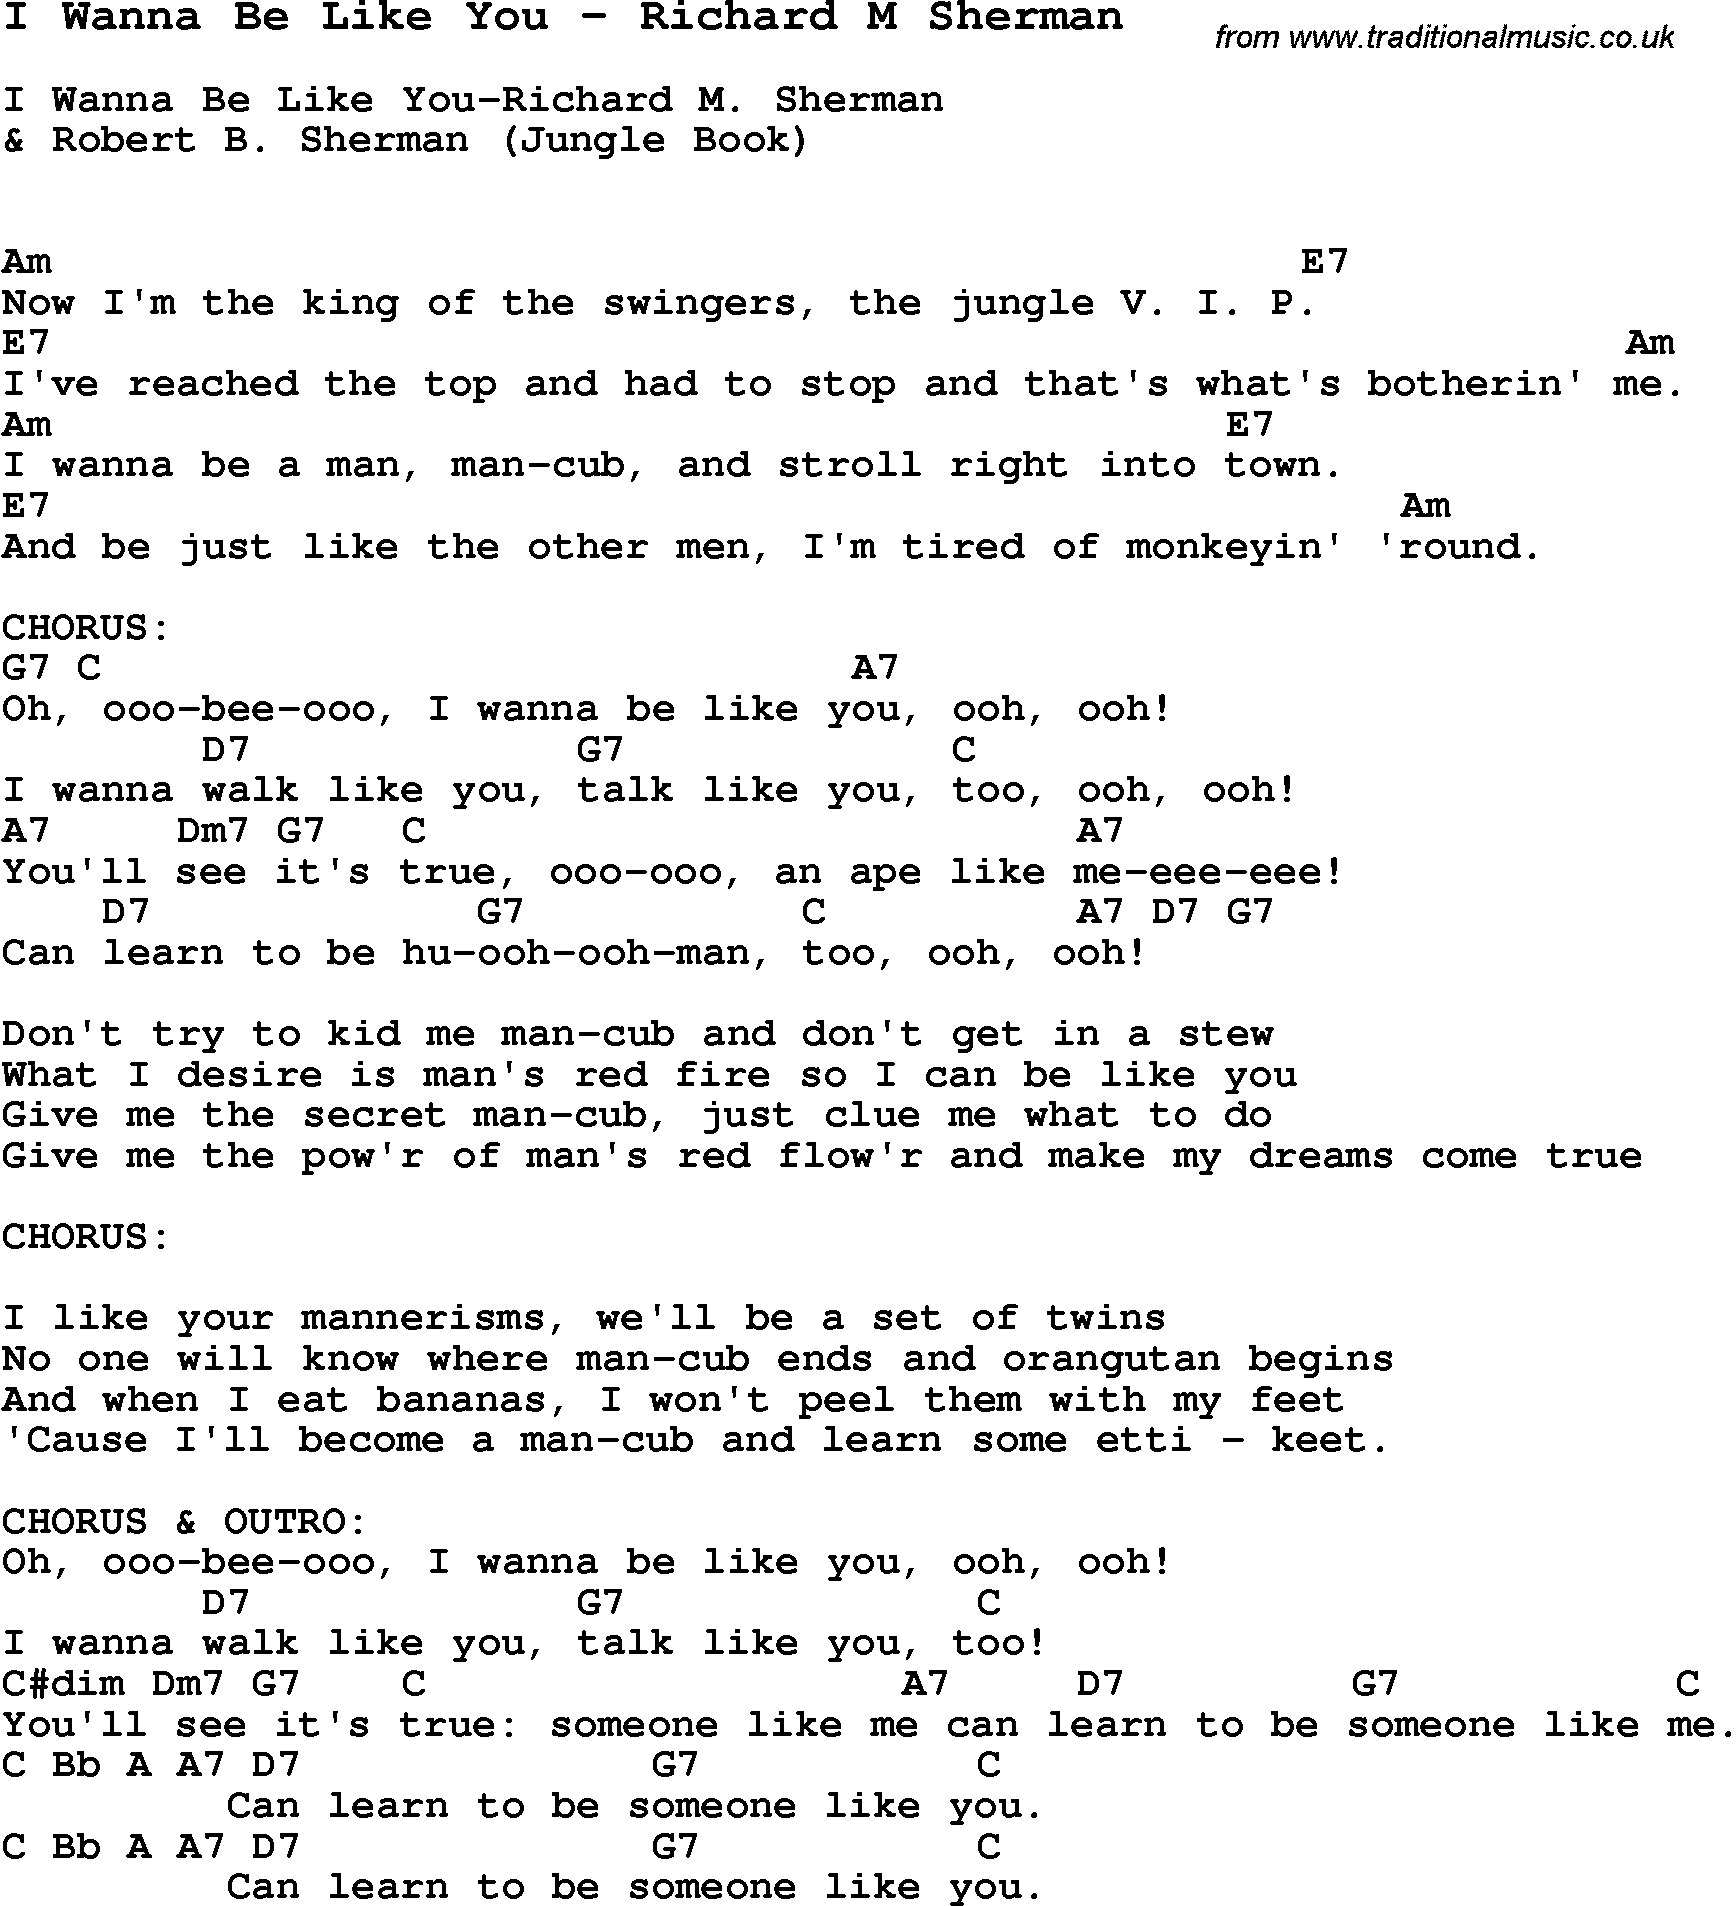 Song I Wanna Be Like You By Richard M Sherman With Lyrics For Vocal